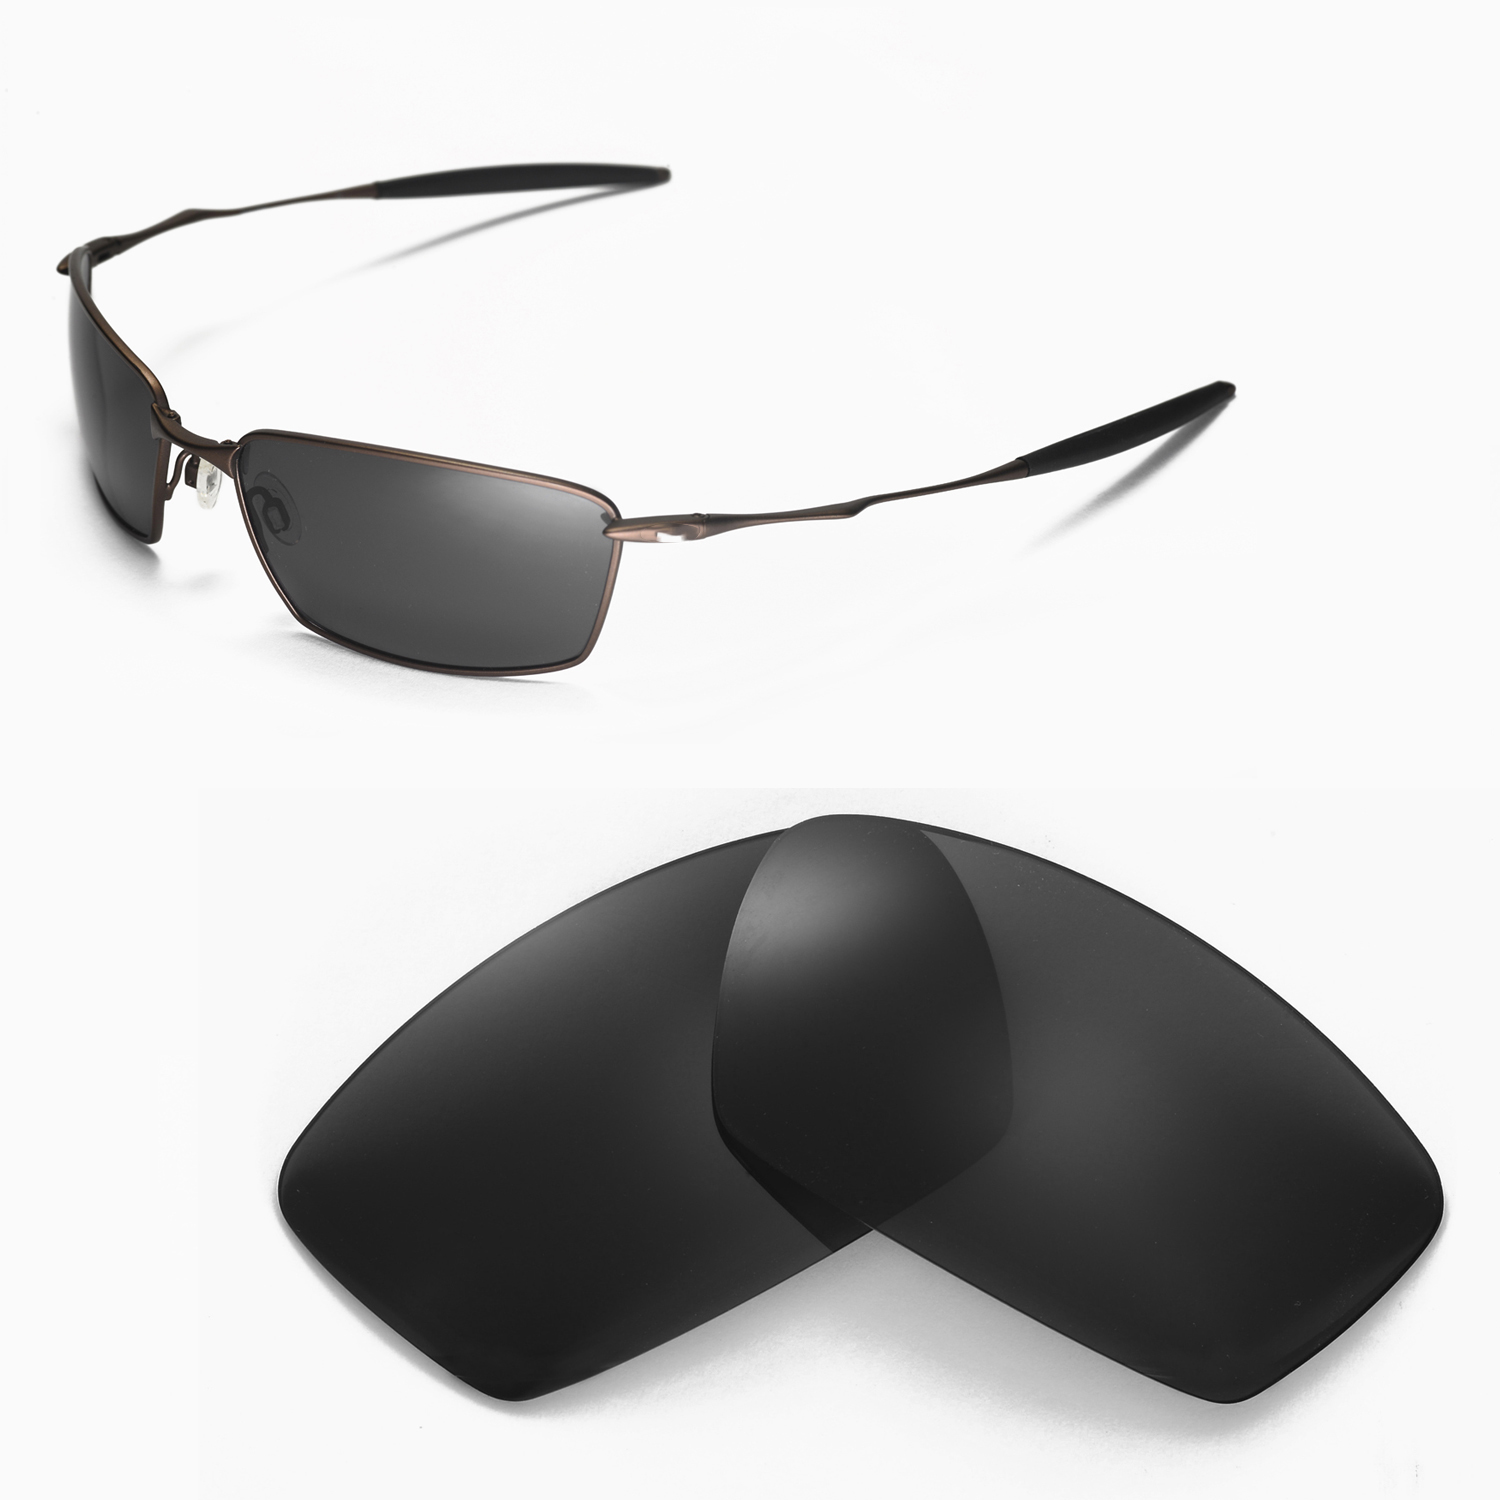 526bf1f554 Details about New WL Polarized Black Replacement Lenses For Oakley Square  Whisker Sunglasses